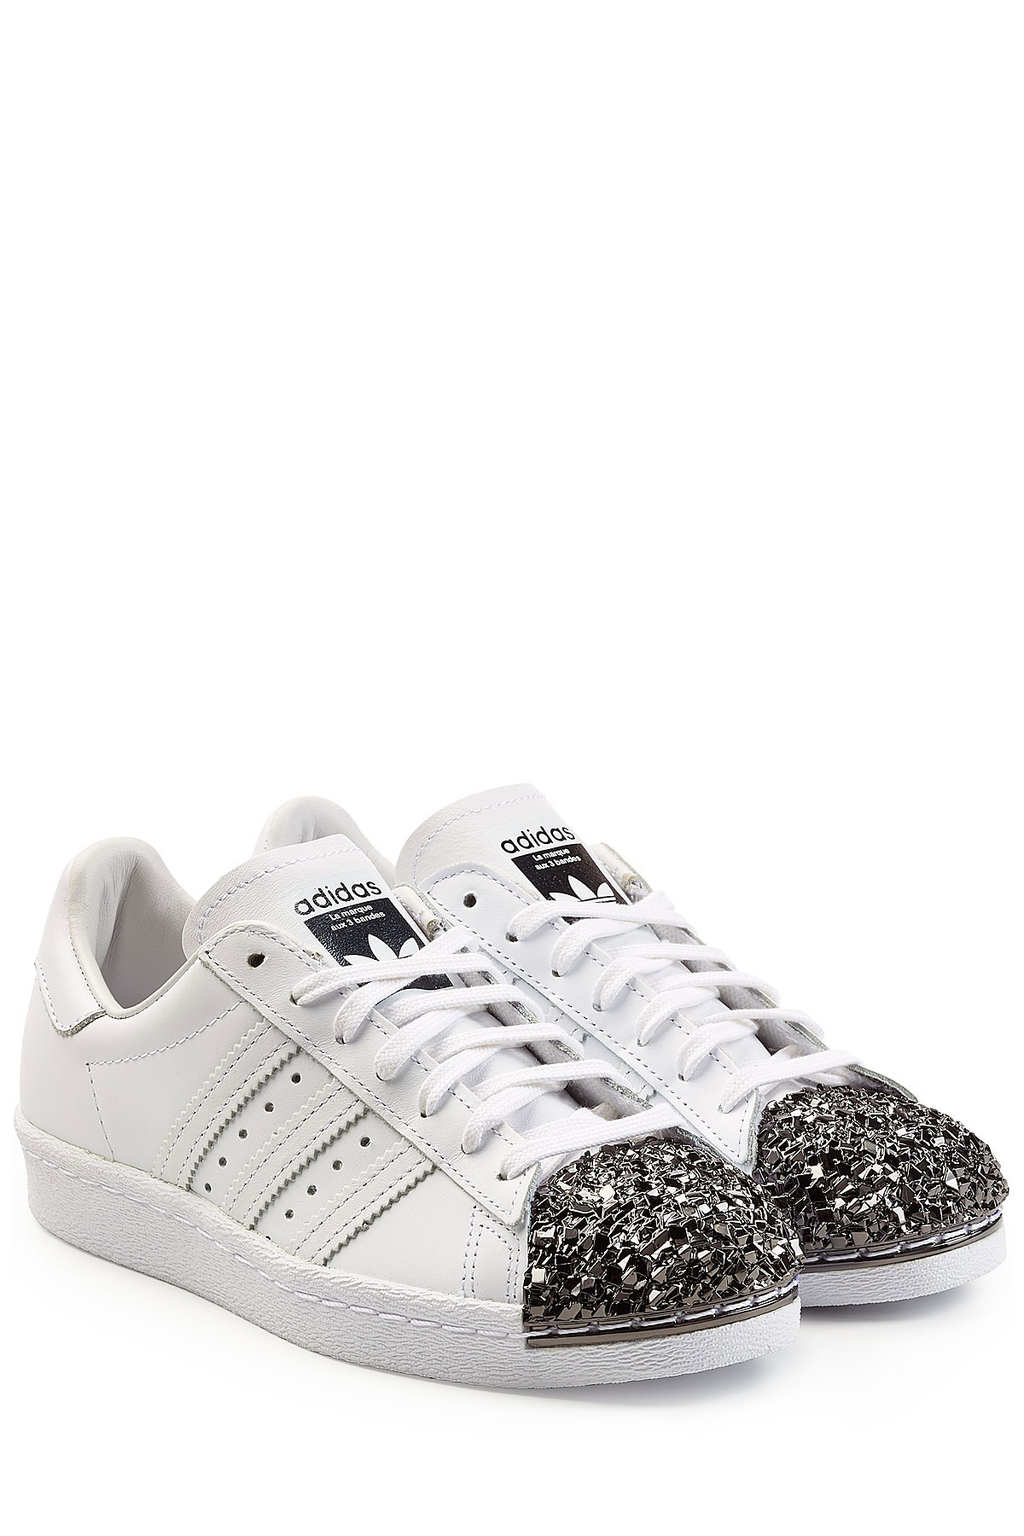 Superstar 80s Leather Sneakers White - predominant colour: white; occasions: casual; material: leather; heel height: flat; embellishment: crystals/glass; toe: round toe; style: trainers; finish: plain; pattern: plain; wardrobe: basic; season: a/w 2016